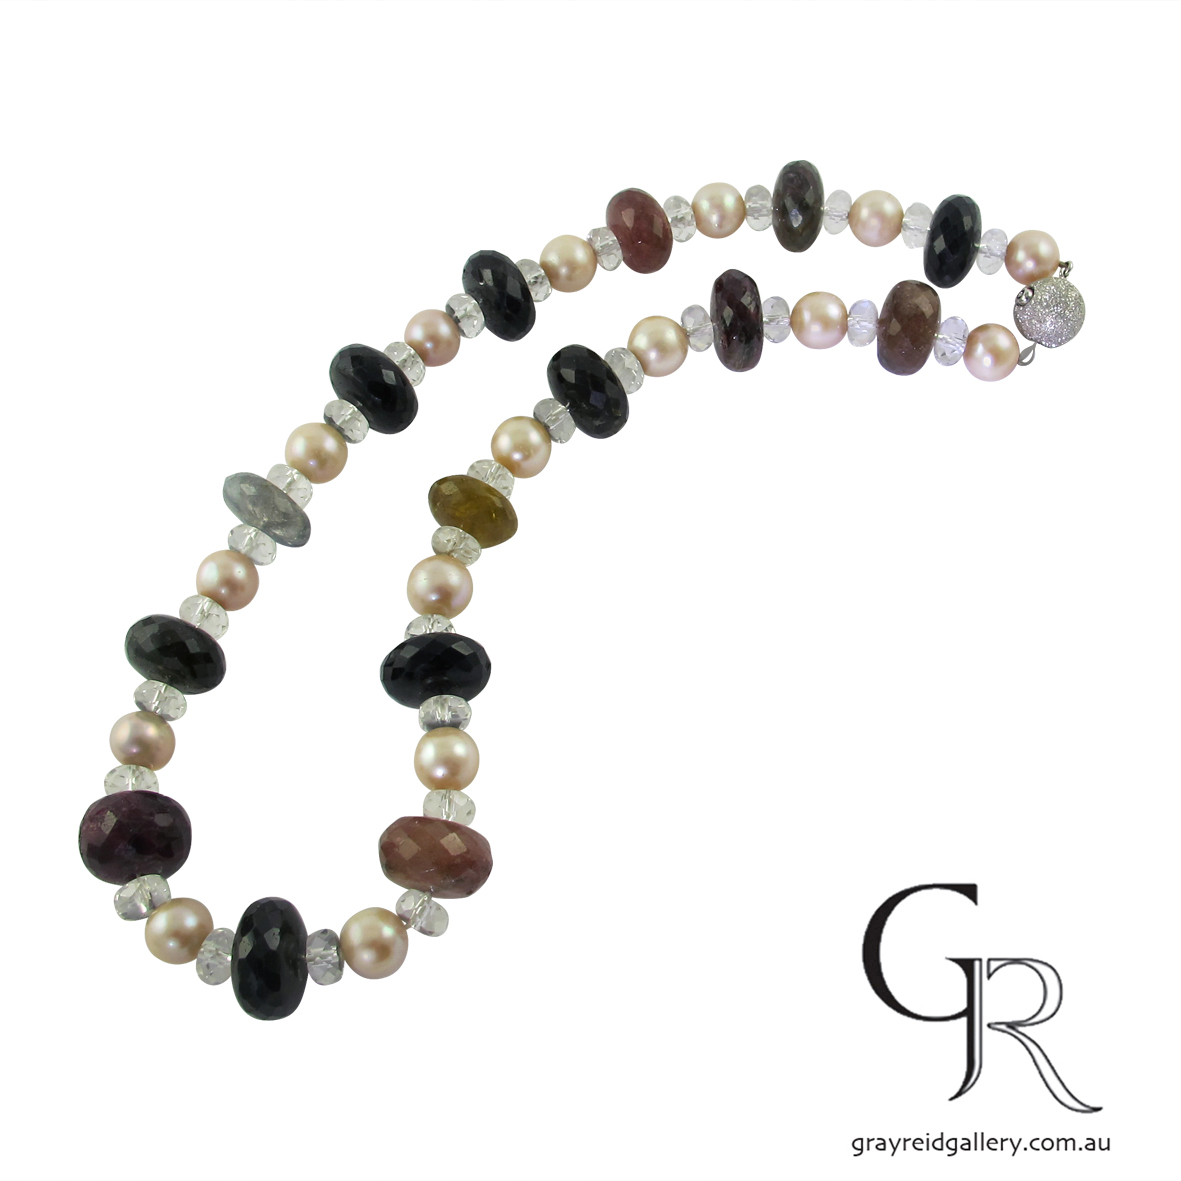 Tourmaline Beads With Fresh Water Pearls